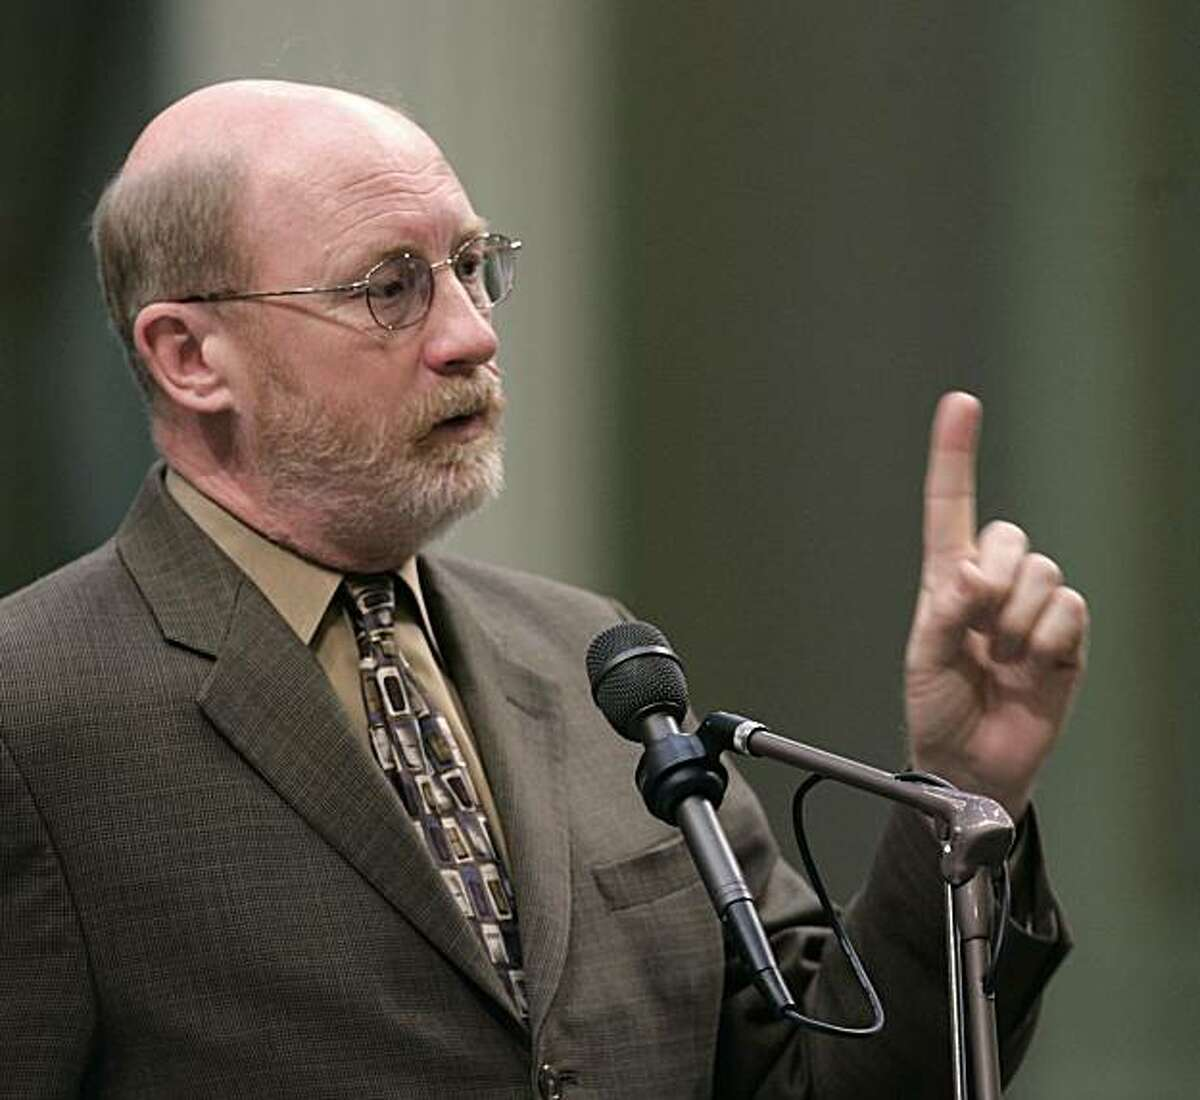 FILE - In this Feb. 19, 2008 file photo is former Assemblyman John Laird, D-Santa Cruz, seen speaking in the Assembly at the Capitol in Sacramento, Calif. Laird has been appointed Secretary of the California Resources Board by Gov. Jerry Brown, Wednesday, Jan. . 4, 2011.